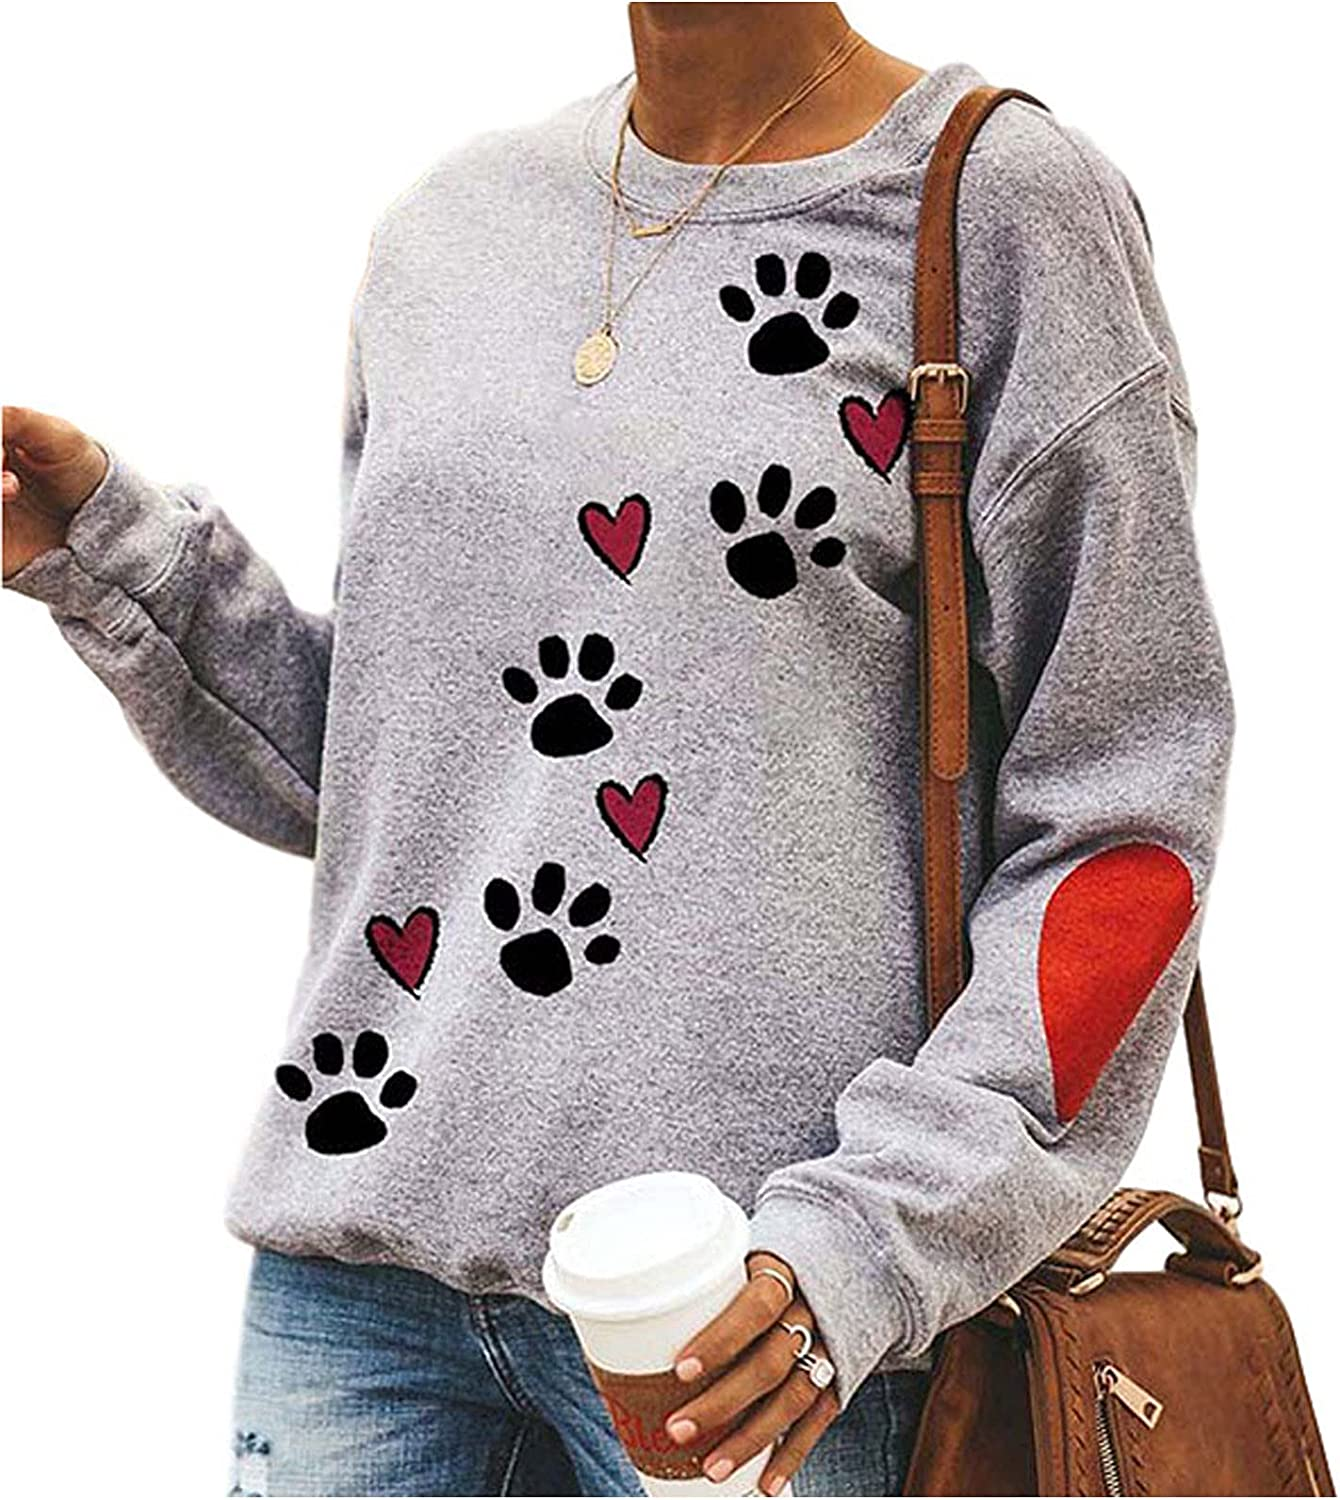 Women Long Sleeve Dog Paw Printed O-Neck Sweater Autumn Loose Cute Easy Pullover Sweatshirt Casual Tops